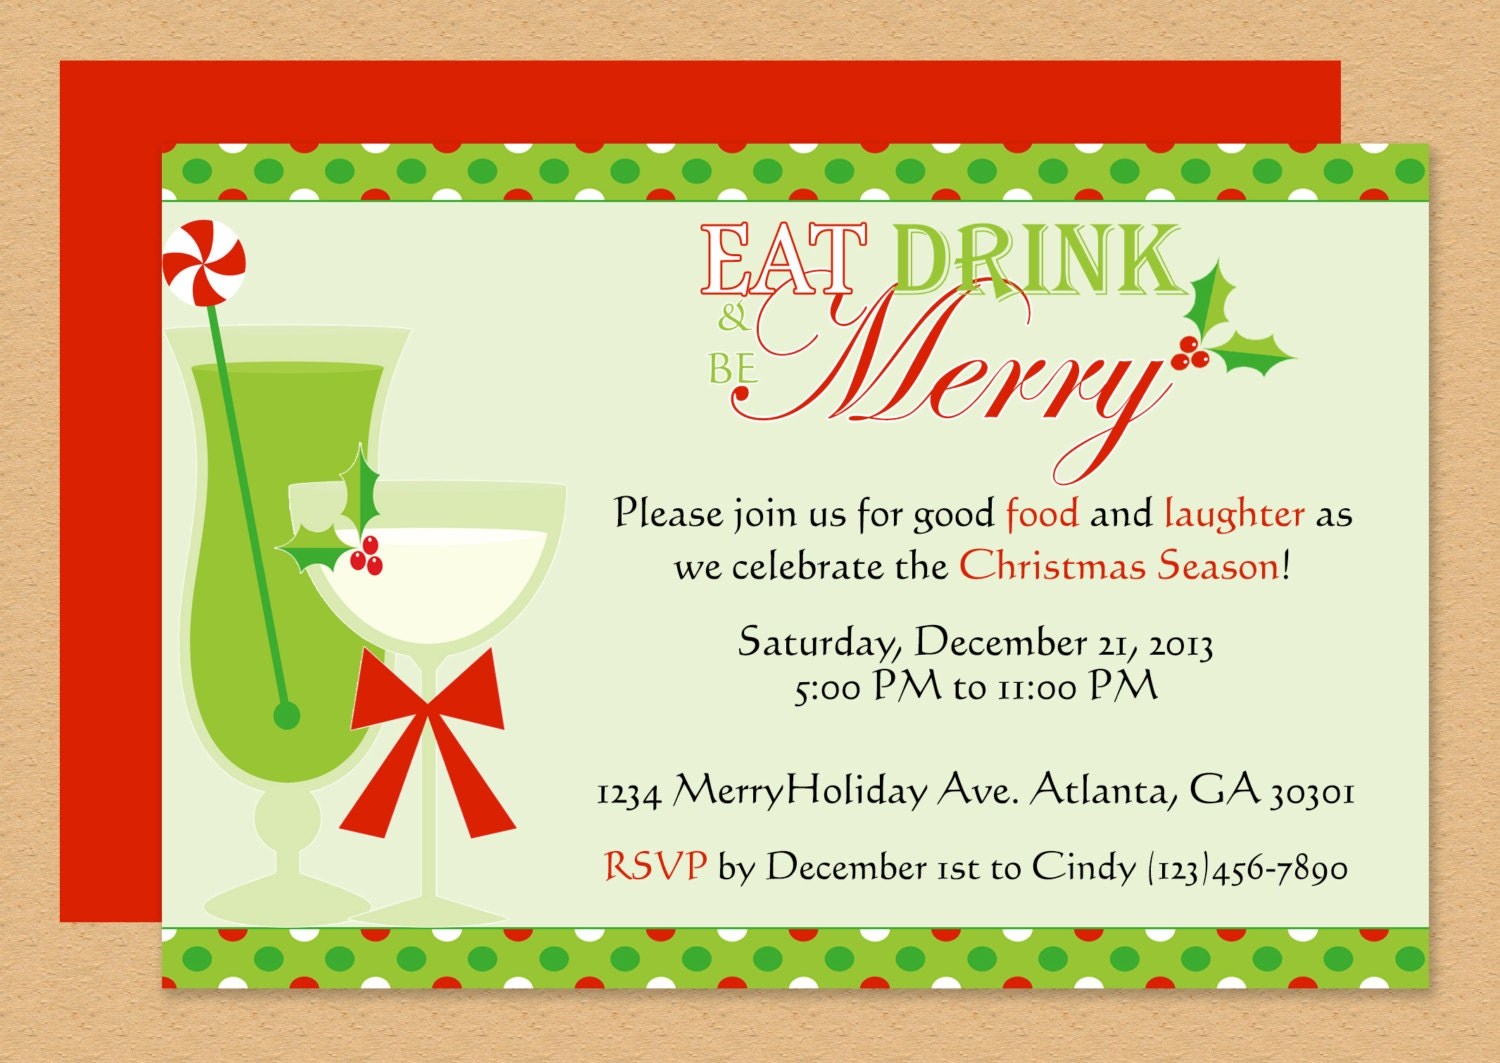 be merry invitation editable template microsoft word